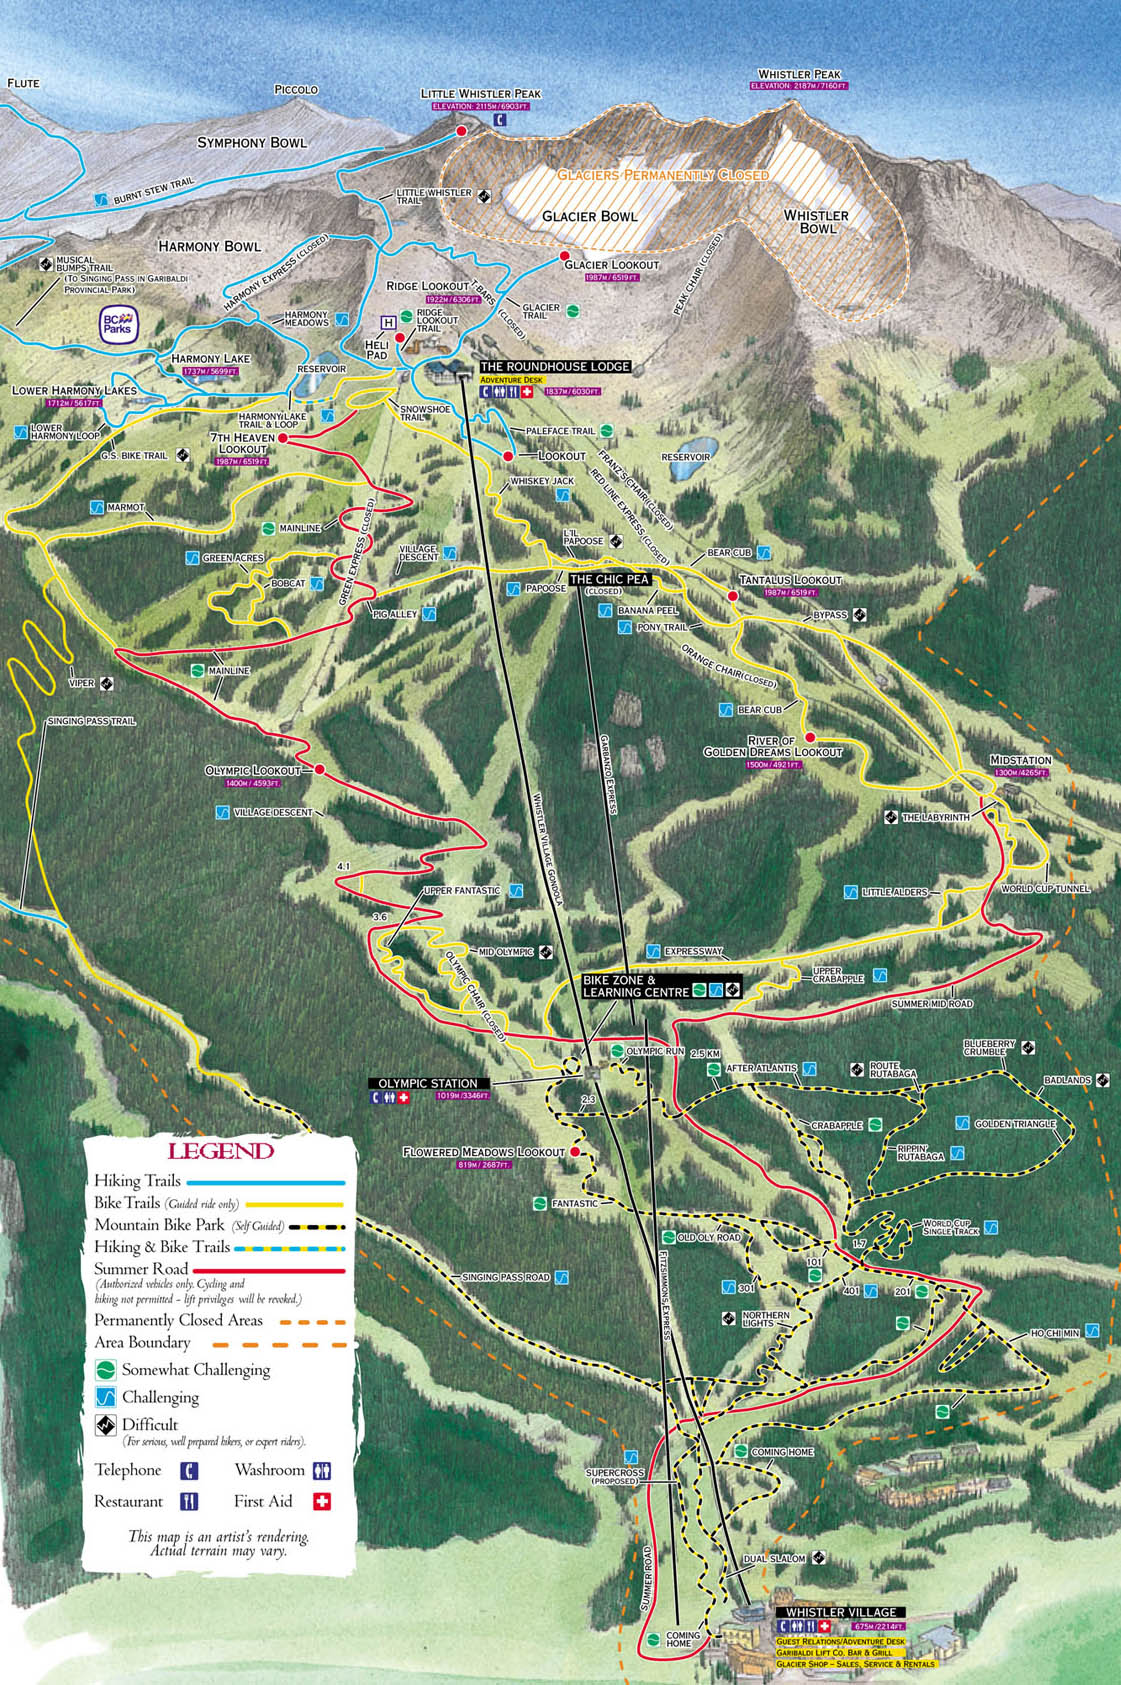 Whistler Blackcomb Summer Trail Map Whistler Mountain Atlas